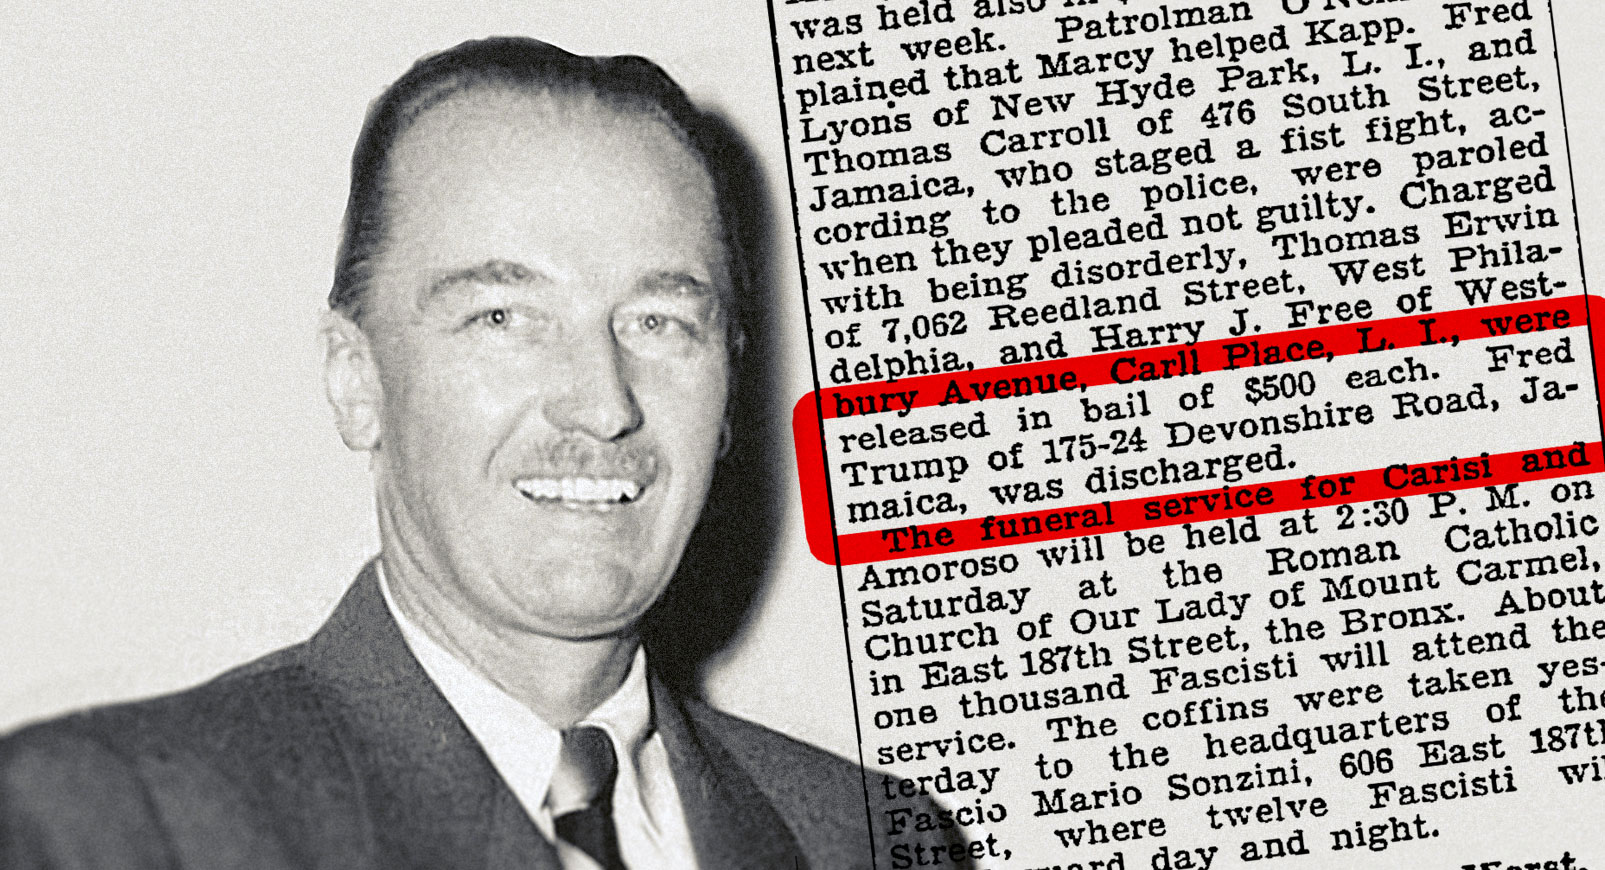 Trumps Dad was probably a member of the KKK - https://www.vice.com/en_us/article/all-the-evidence-we-could-find-about-fred-trumps-alleged-involvement-with-the-kkk